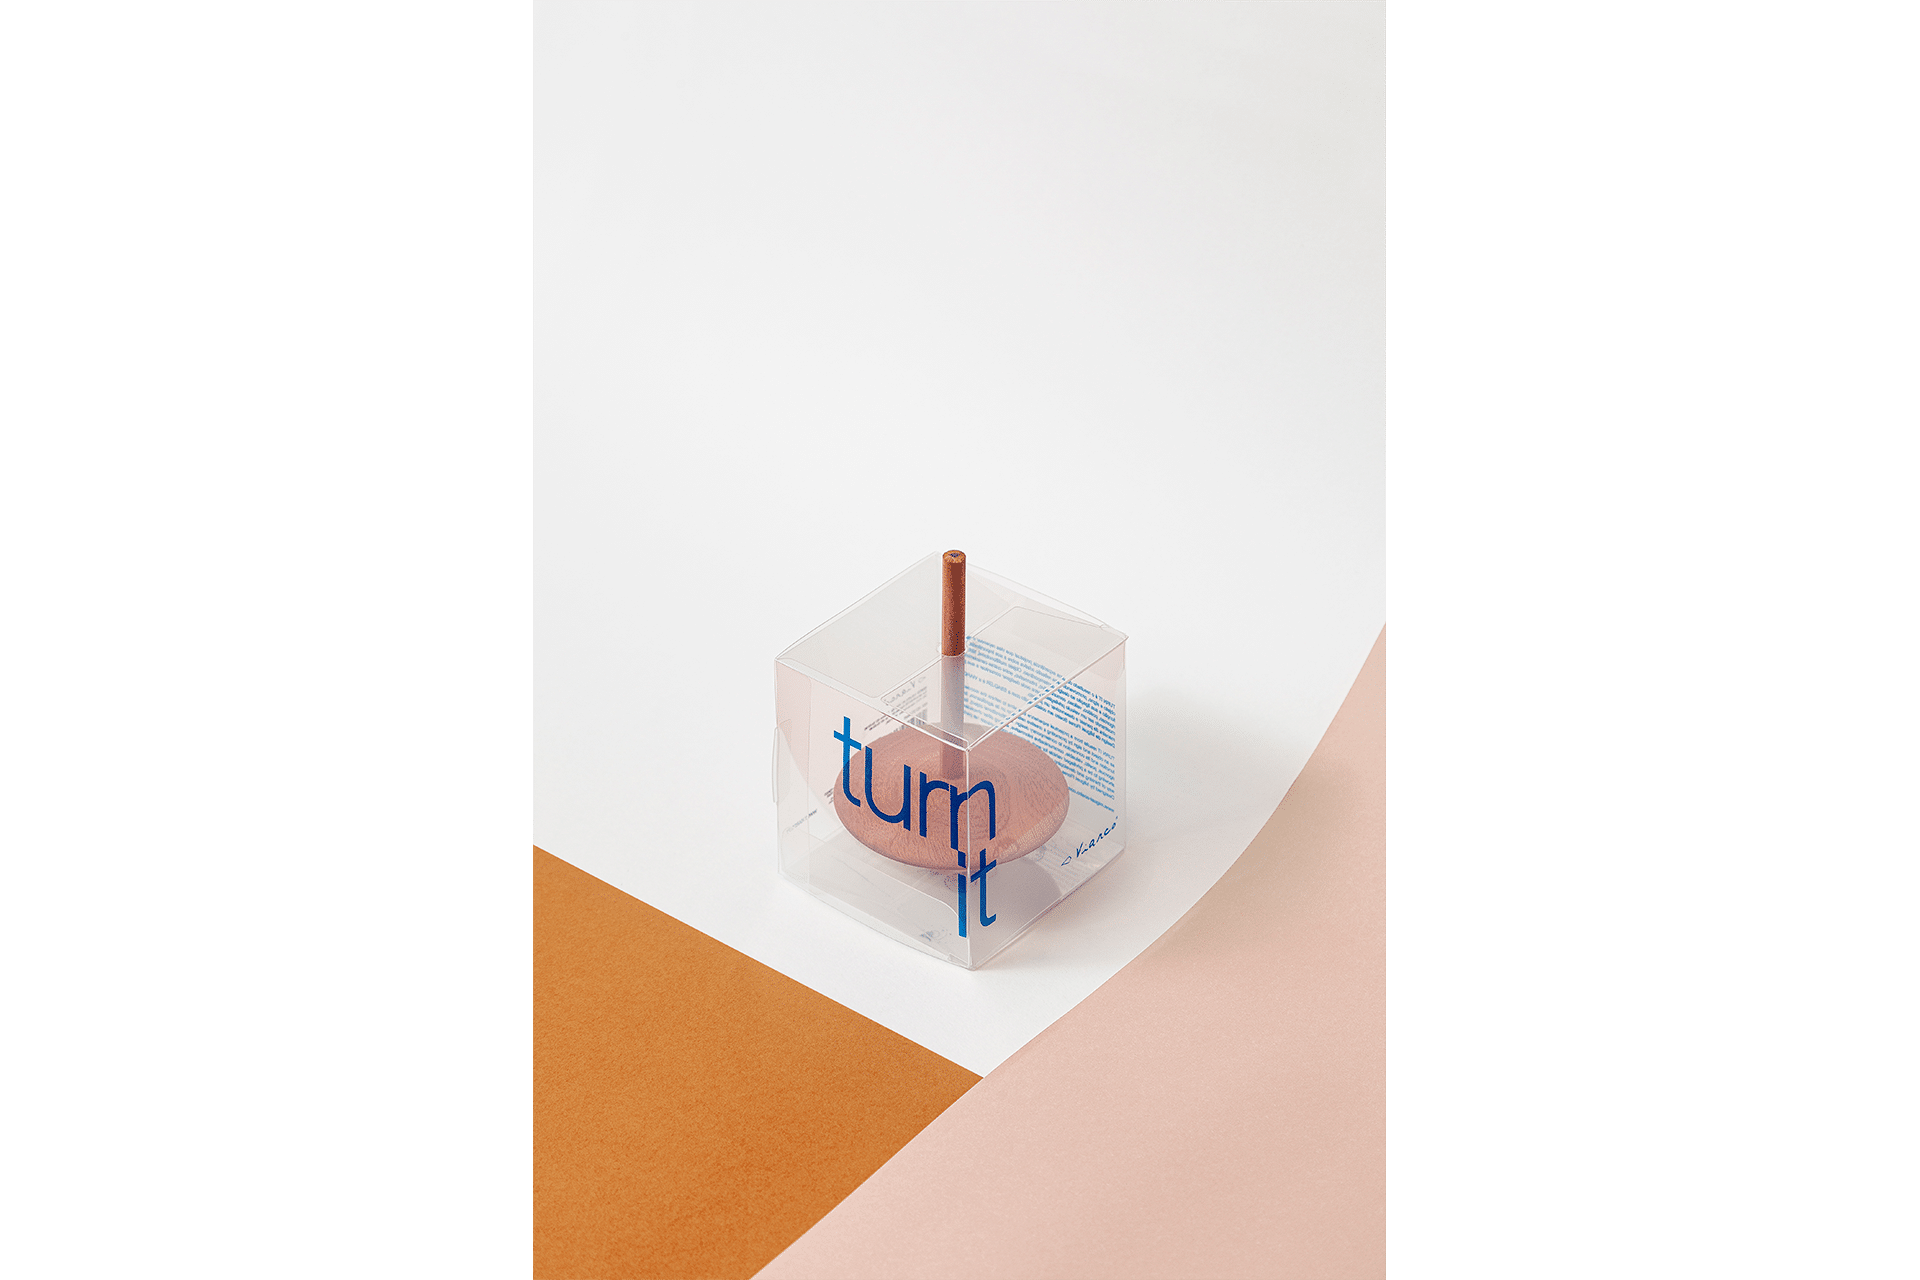 TurnIt Packed- DESIGN BY MIGUEL SOEIRO